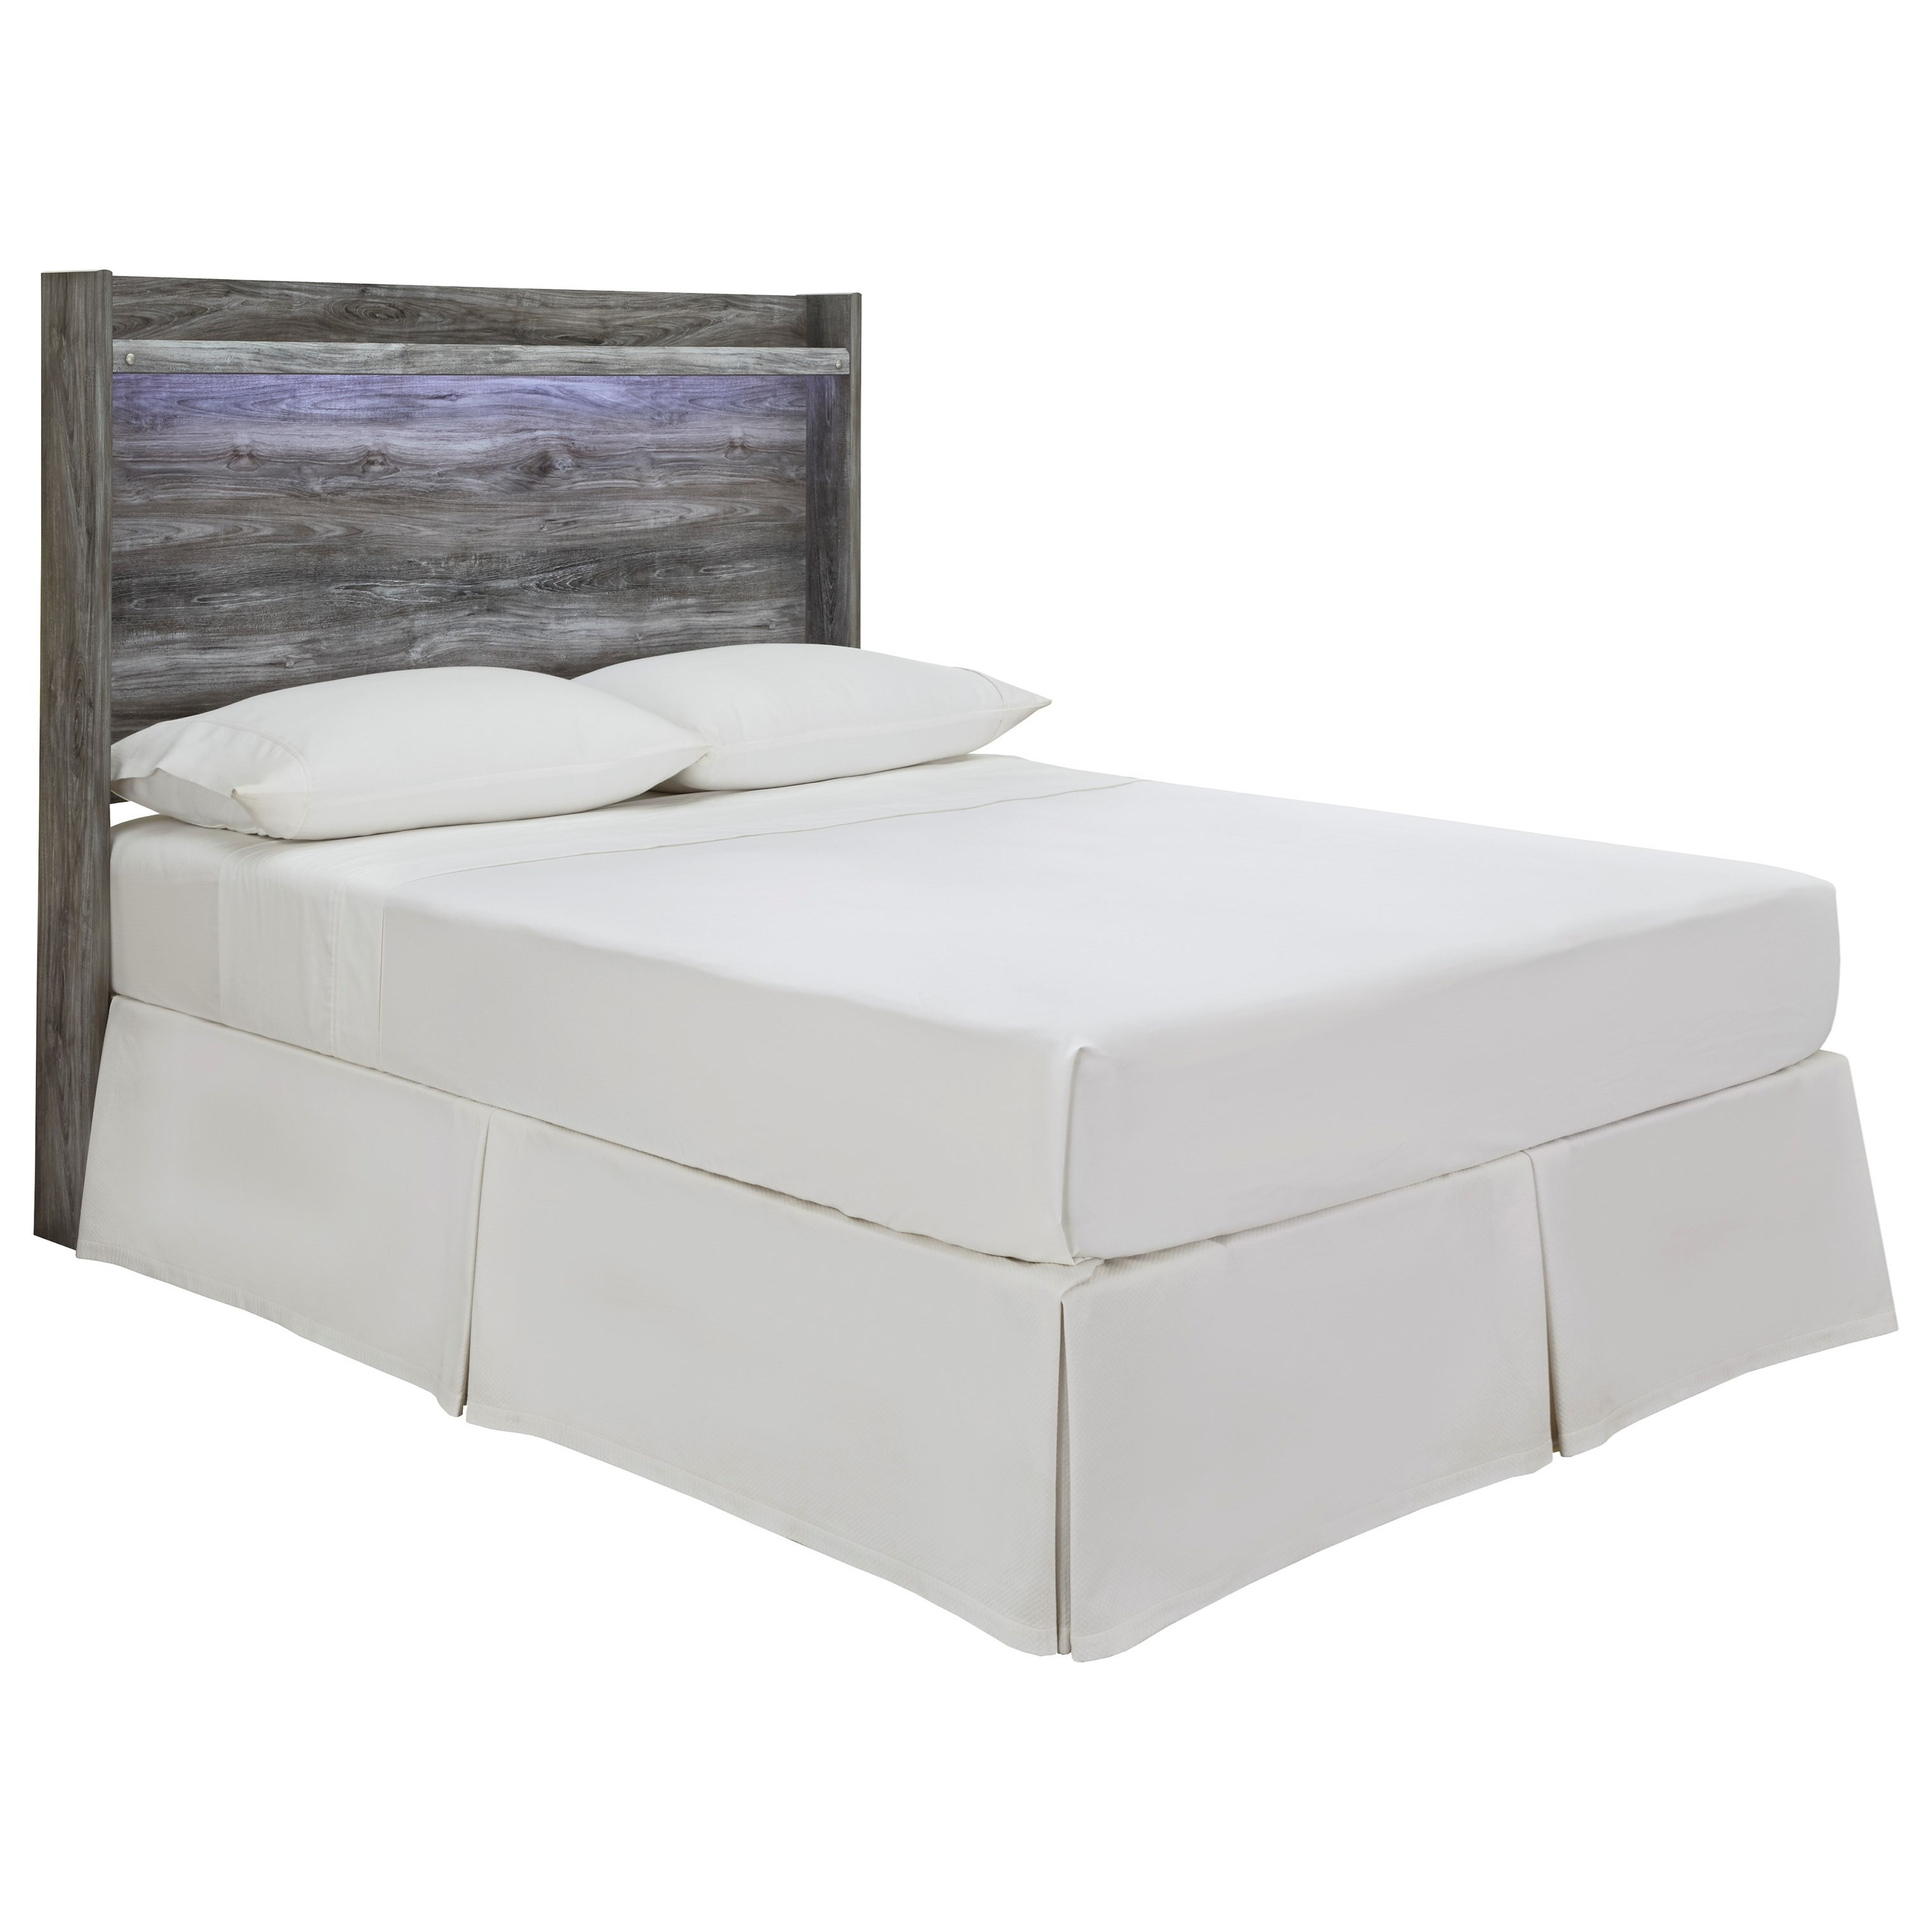 Baystorm Full Panel Headboard by Signature Design by Ashley at HomeWorld Furniture